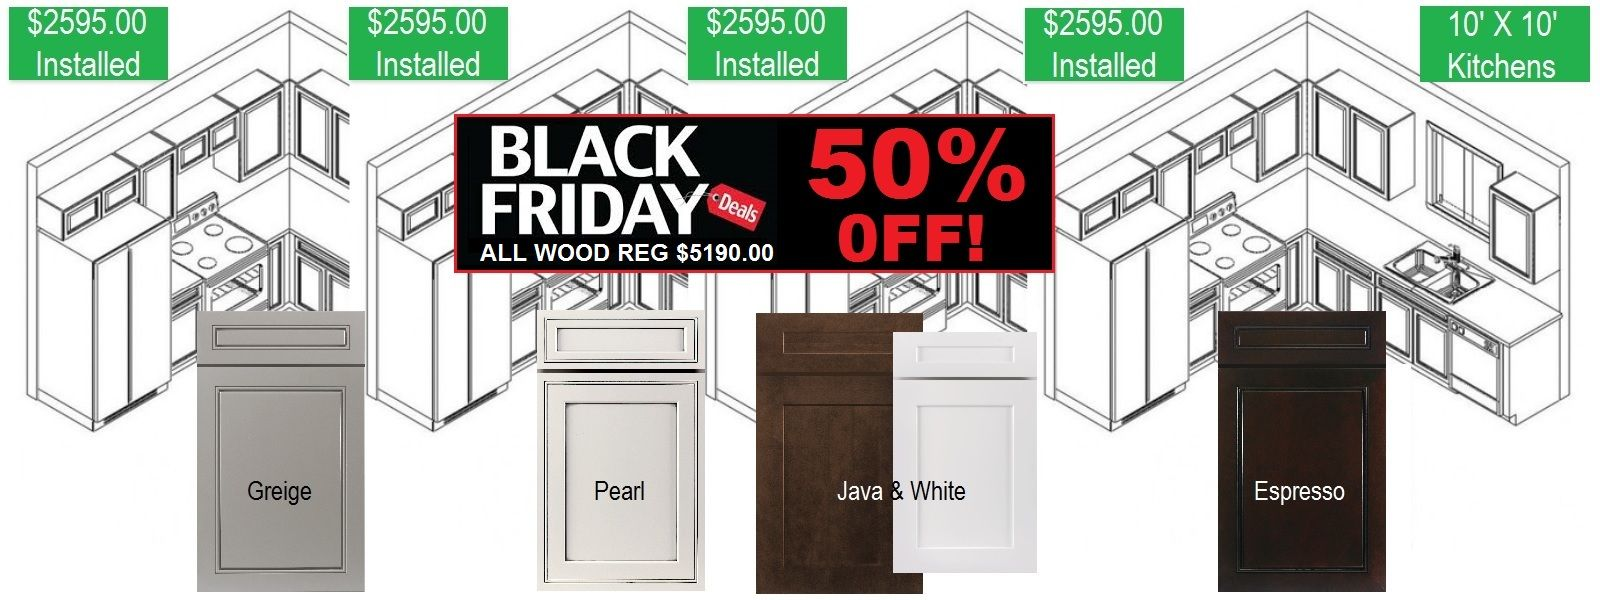 Kitchen Cabinets Black Friday Sale 50 Off Select Cabinet Finishes All Wood Kitchen C Kitchen Remodel Design Kitchen Cabinets And Countertops Black Kitchens